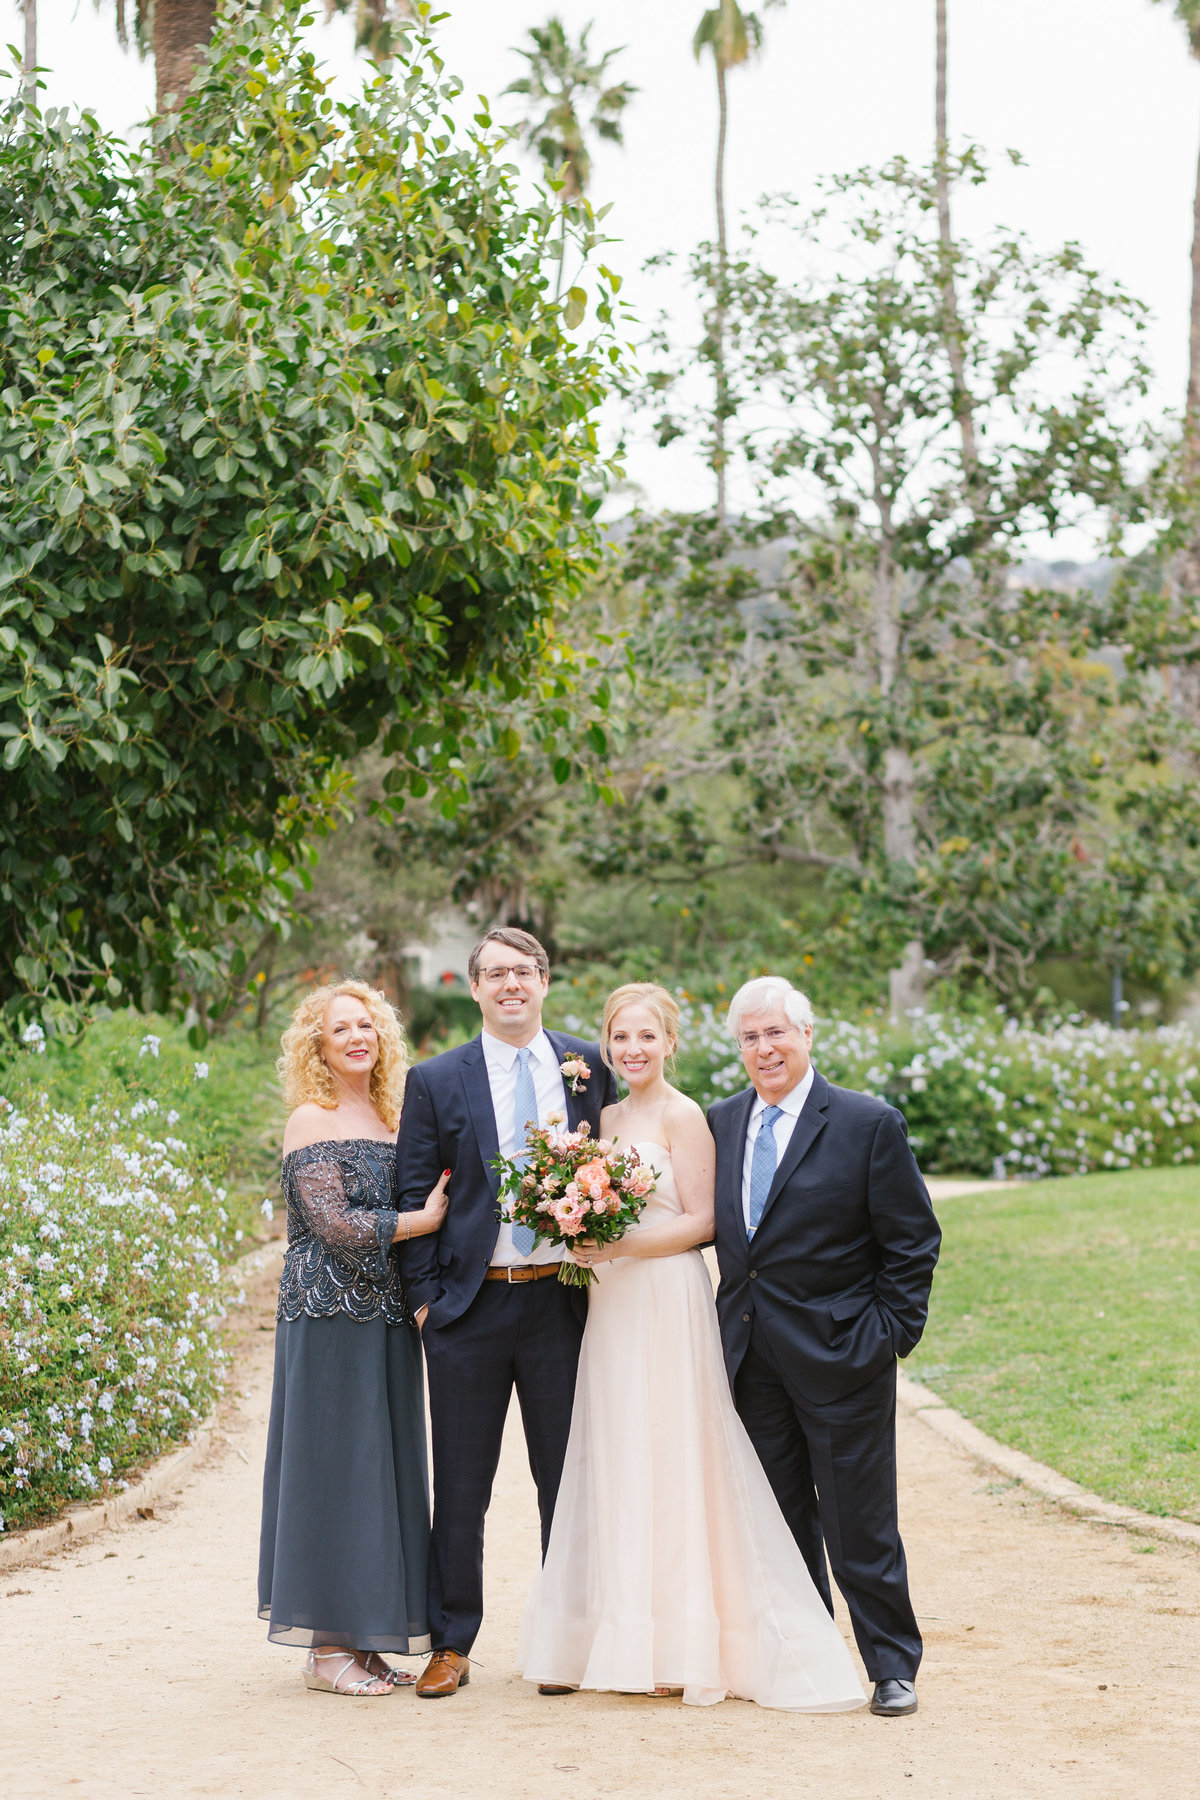 Intimate-Romantic-Santa-Barbara-Wedding-Venue-23